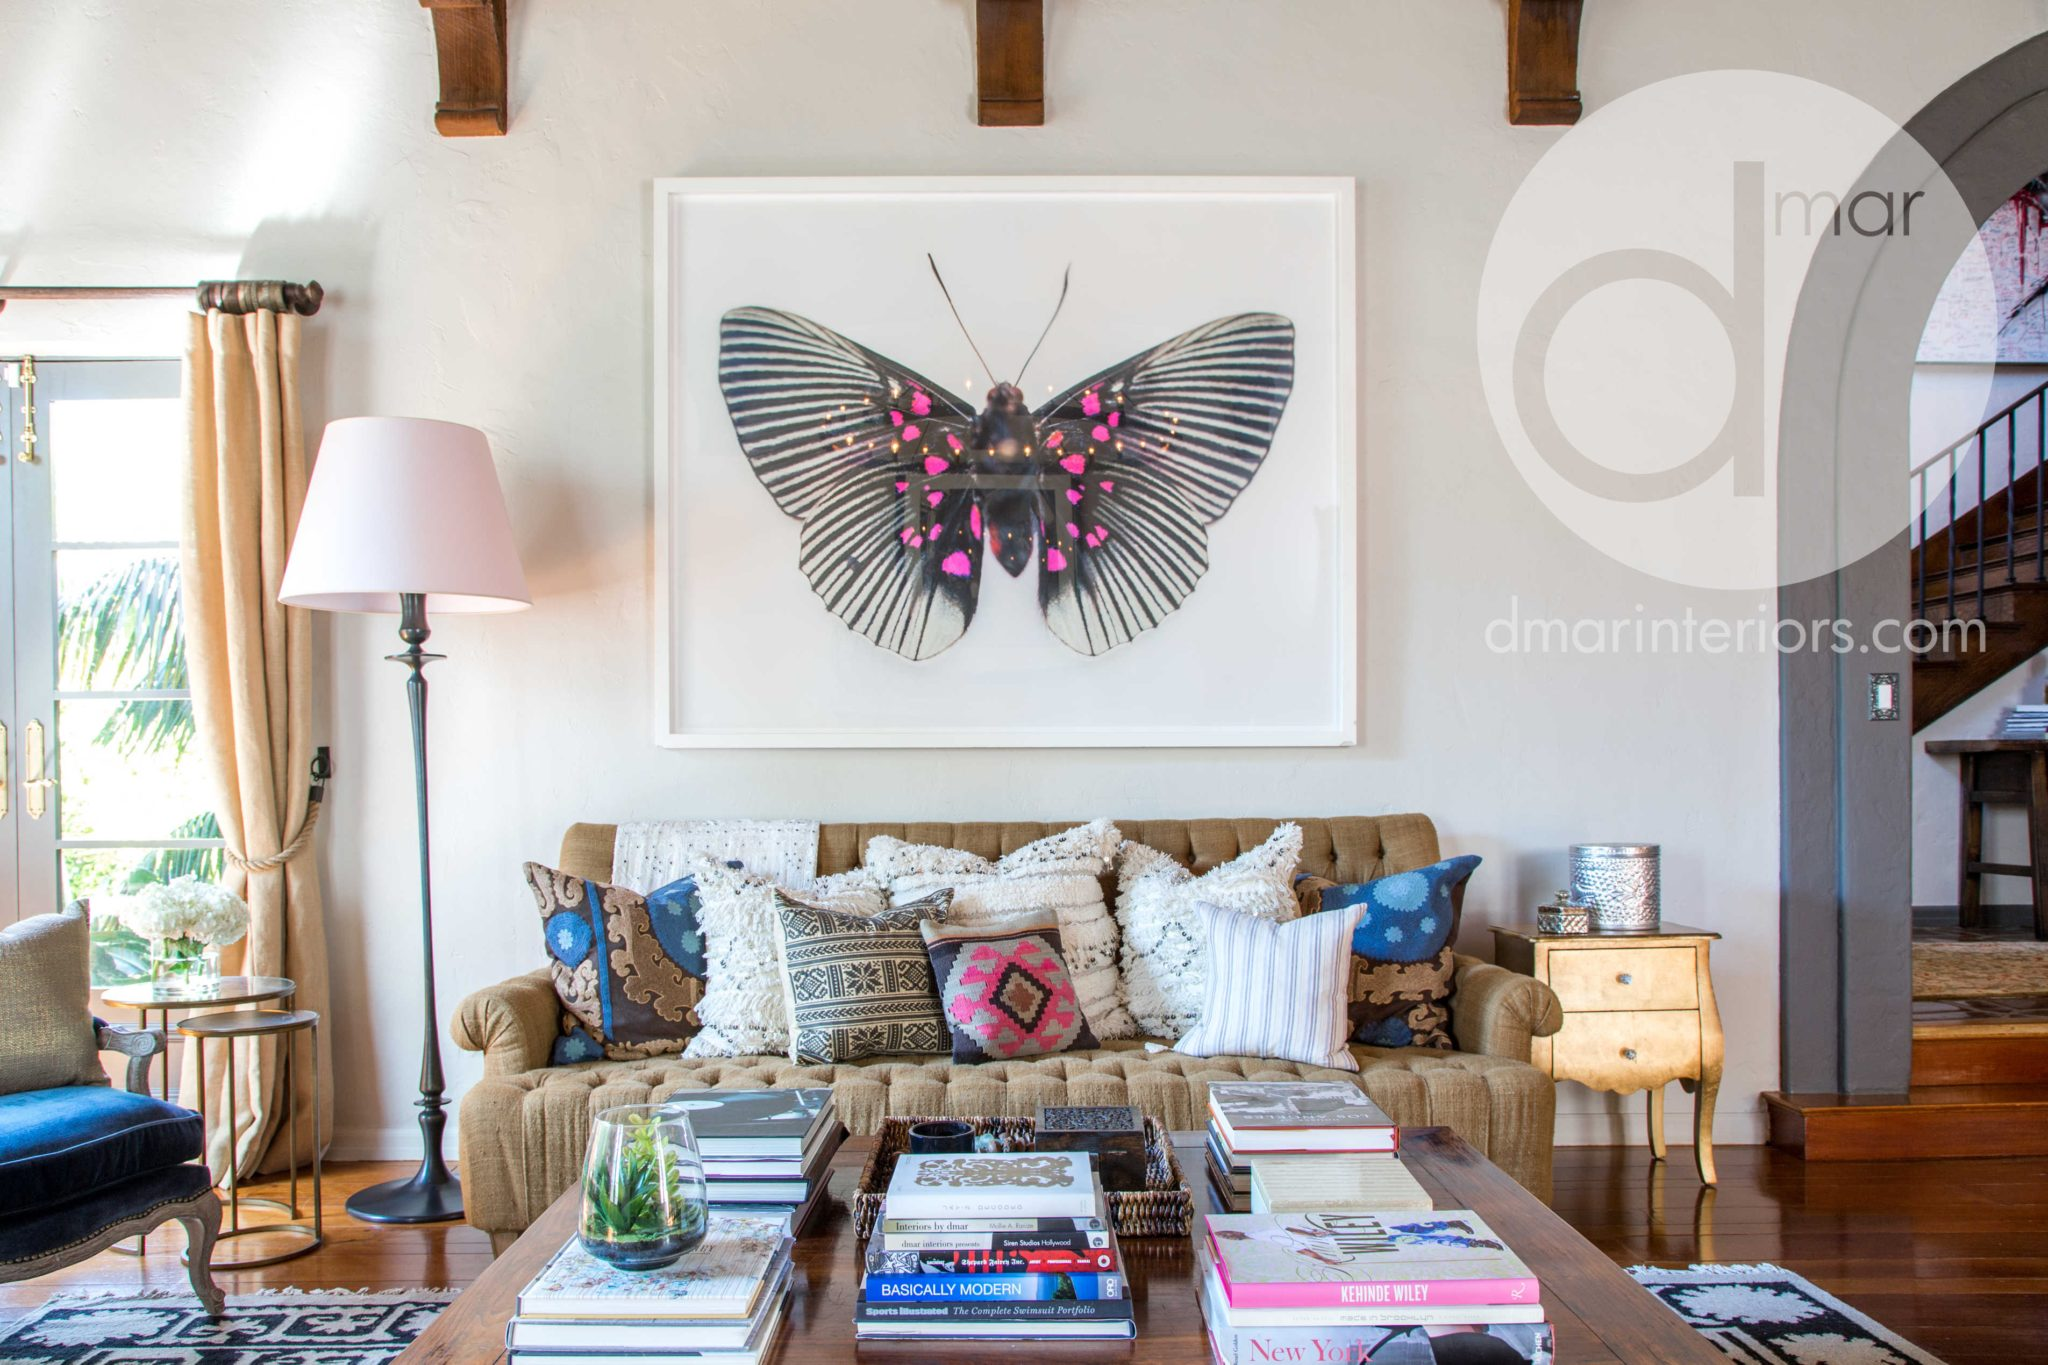 Spanish Boho estate with large art and wood beams by dmar Interiors